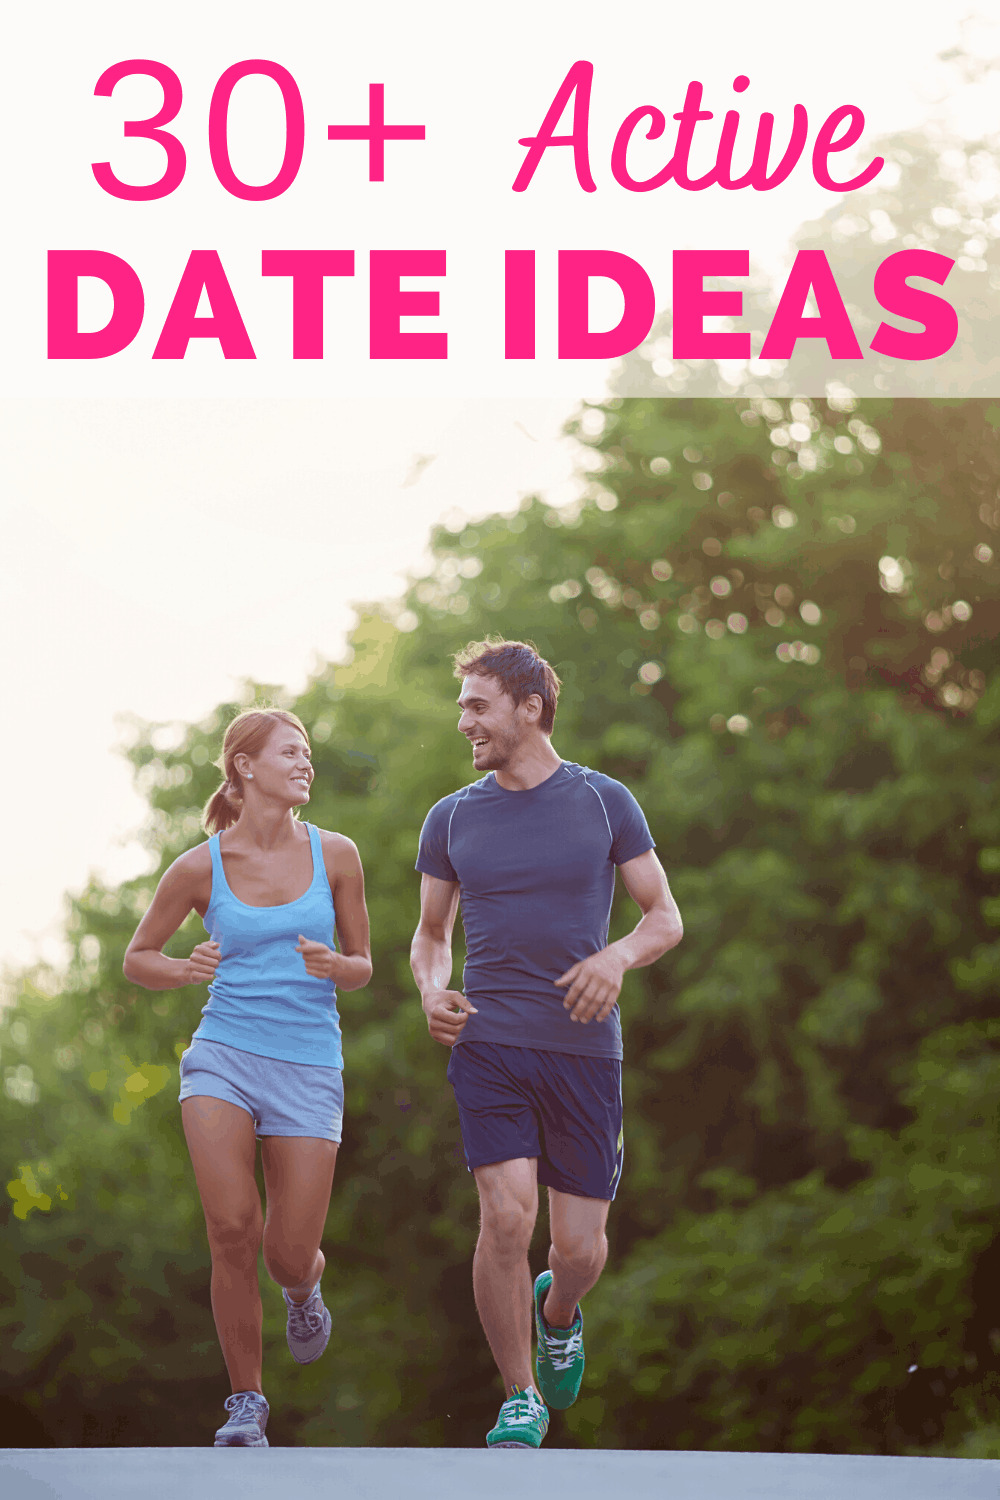 a man and woman on an active date taking a run together